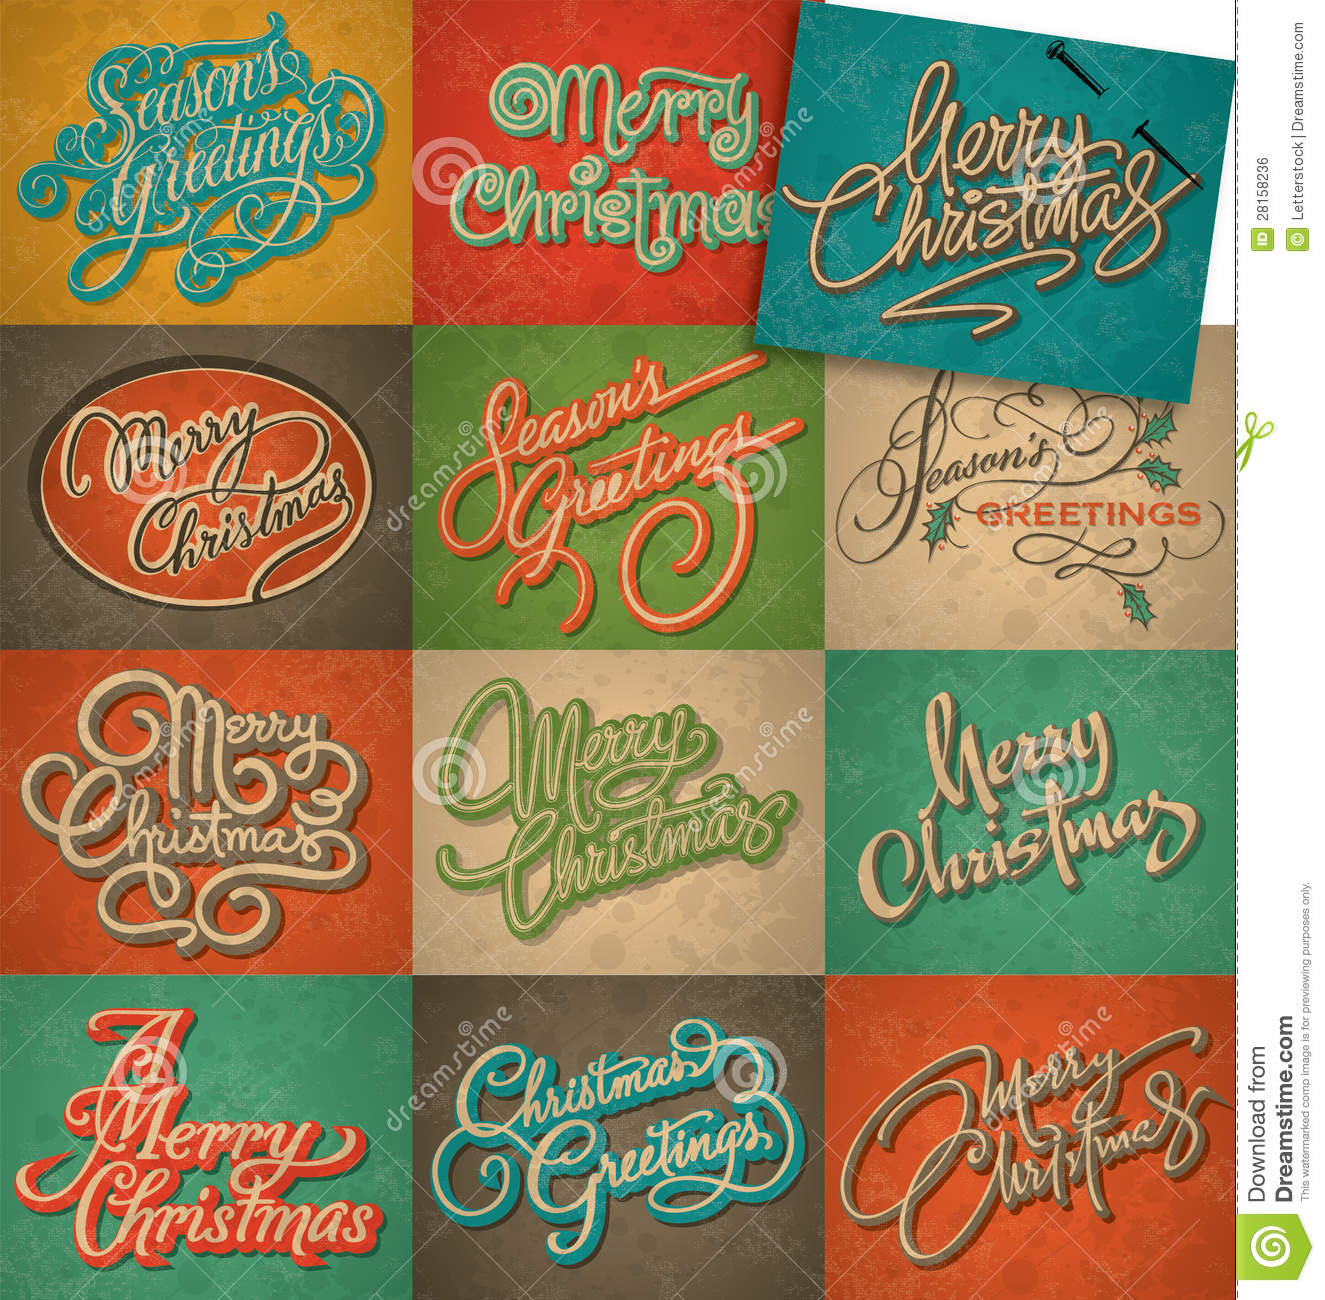 Charming Vintage Christmas Cards Set (vector)